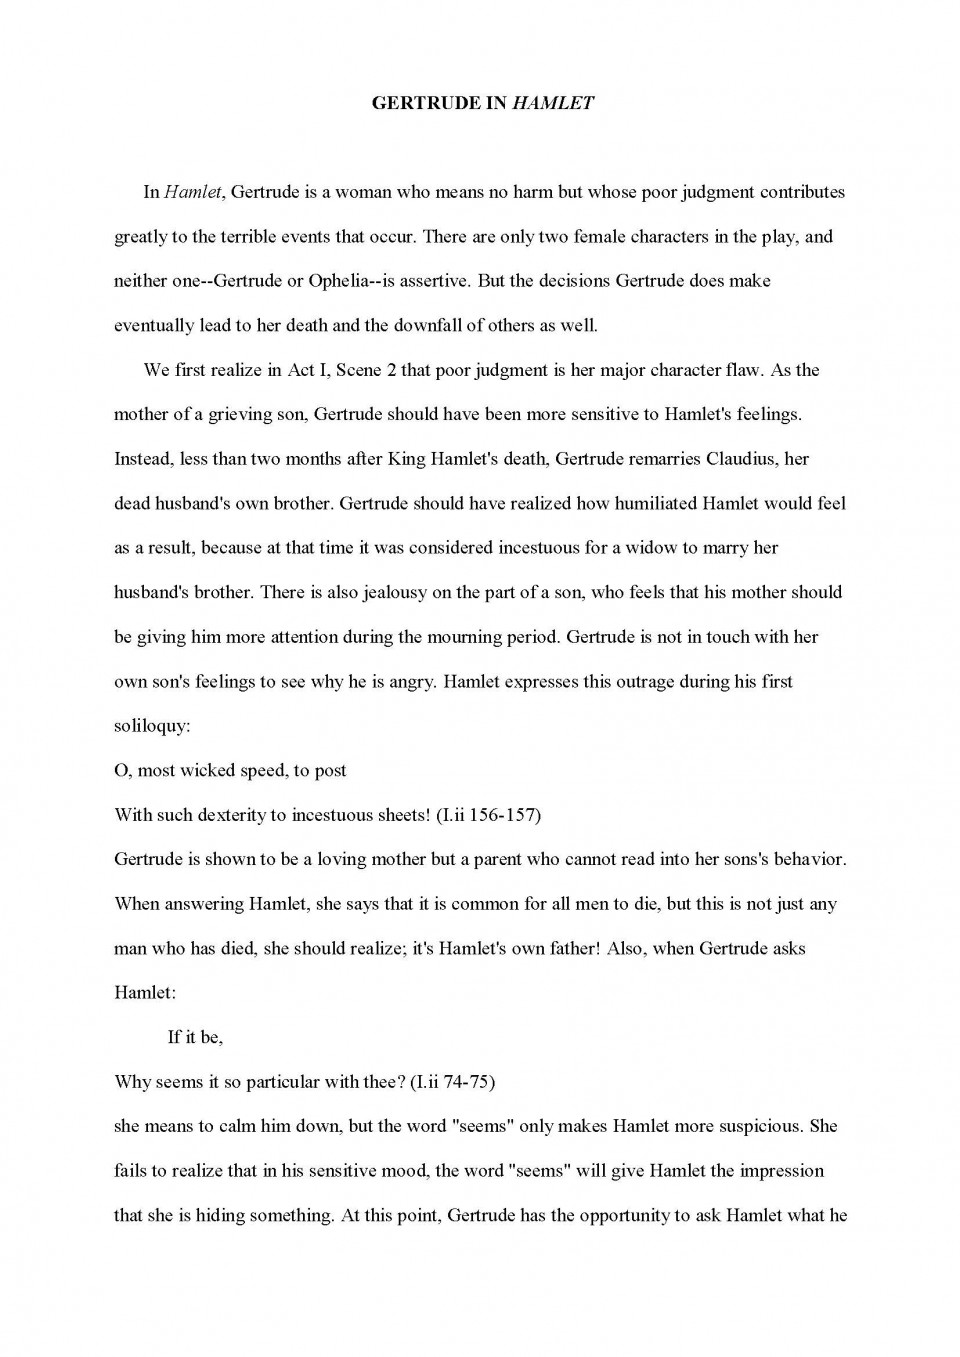 004 Analysis Essay Sample Example How To Write Formidable A Literary Good English Literature Introduction Conclusion Grade 4 960